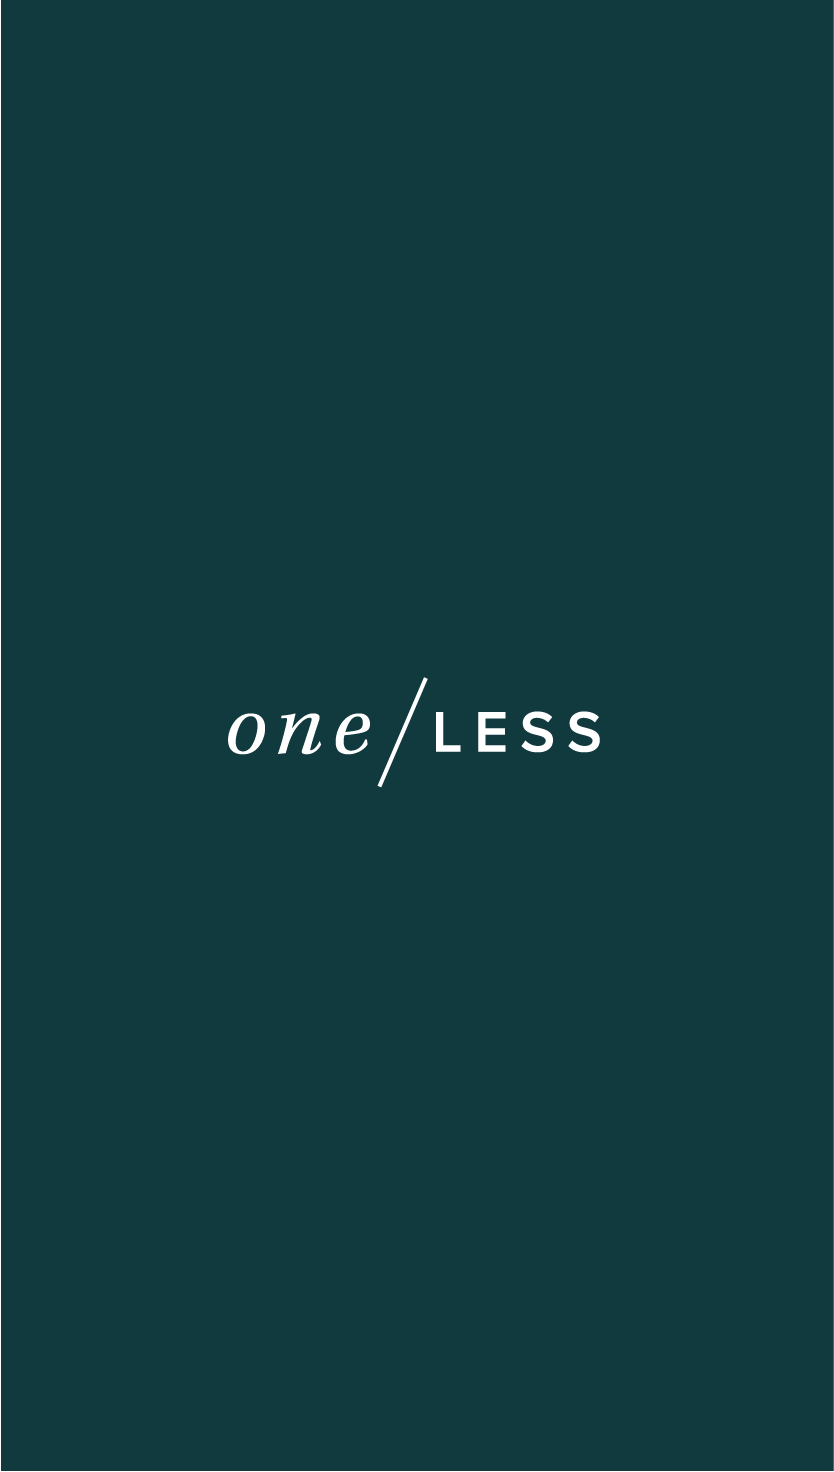 One Less Brand Design by Salt Design Co.